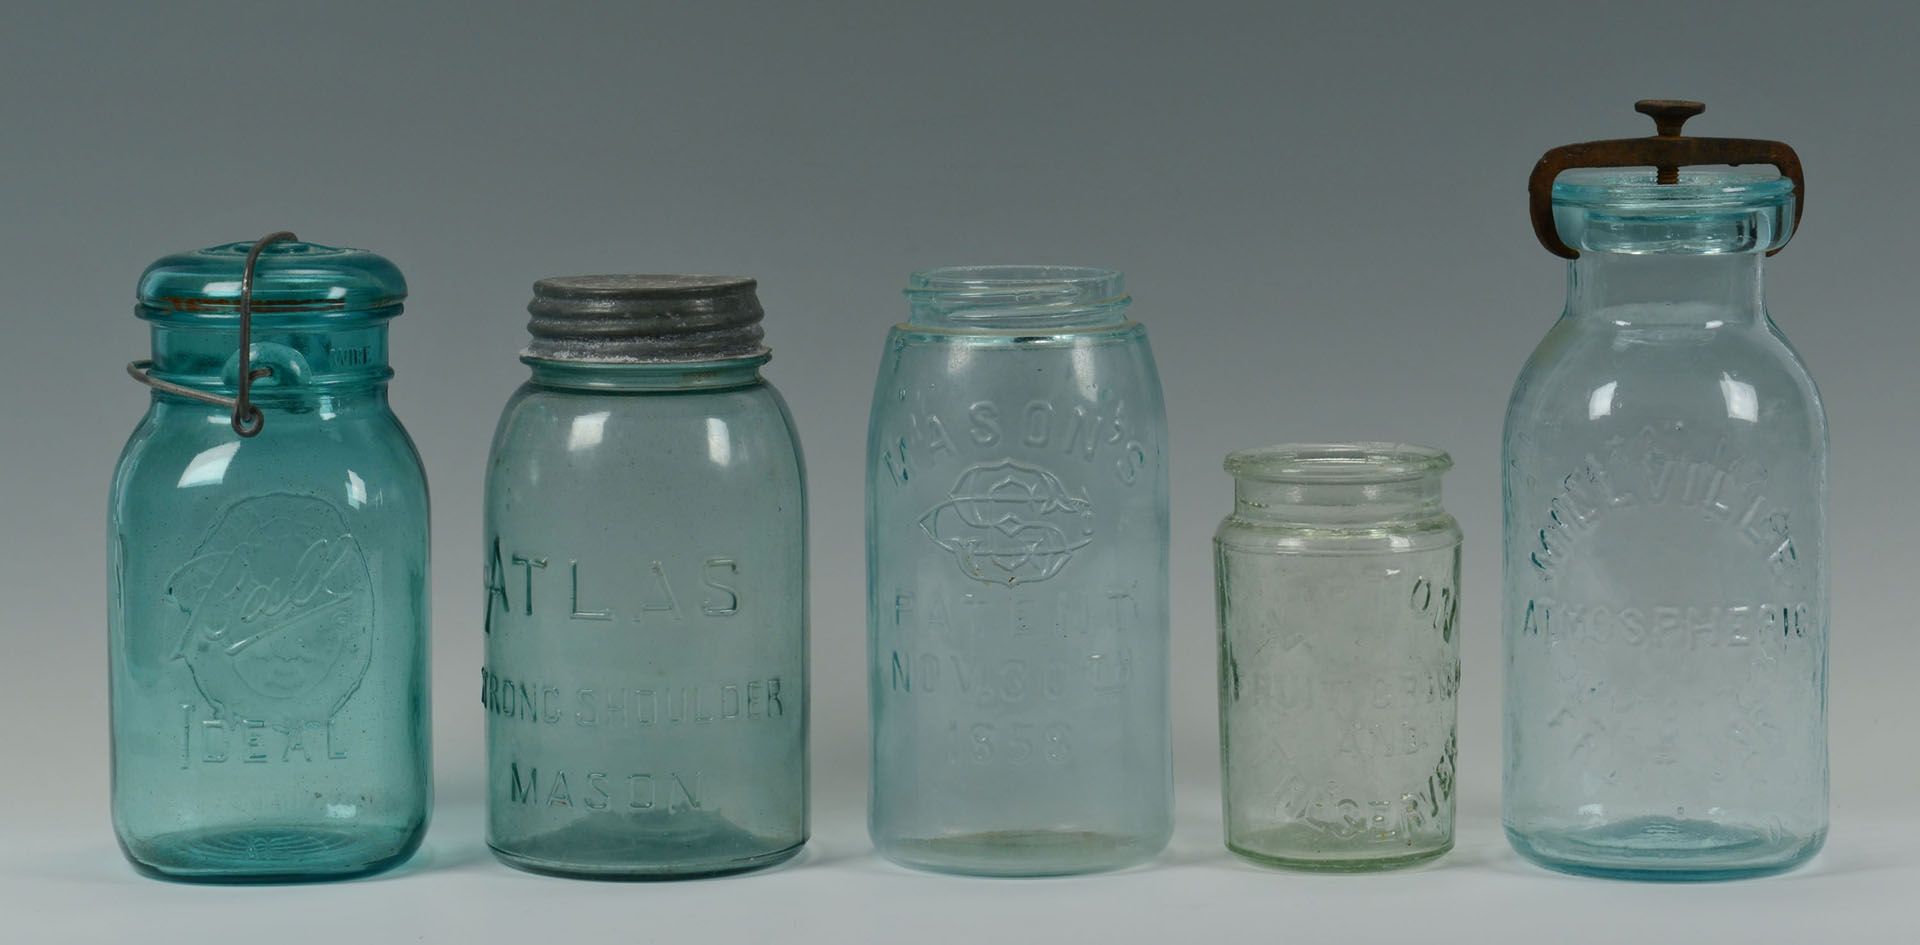 Lot 757: Grouping of 10 Early Canning Jars & water bottle